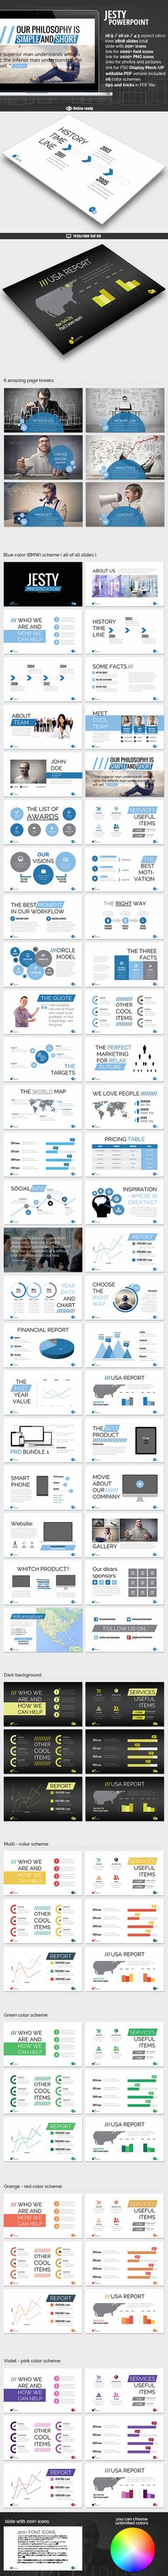 Jesty Powerpoint Presentation - Business PowerPoint Templates